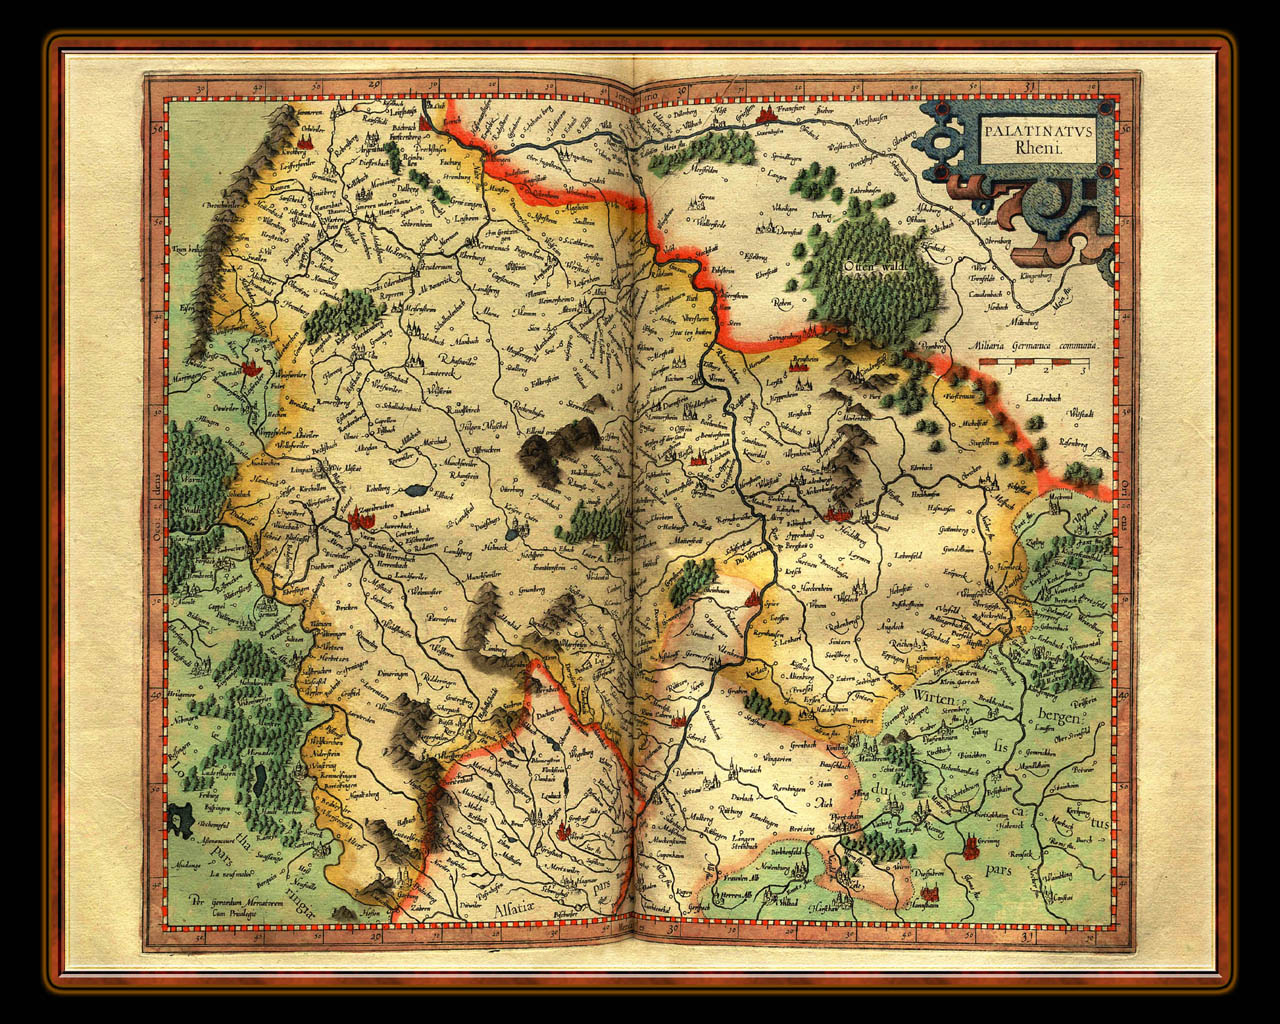 """Gerhard Mercator 1595 World Atlas - Cosmographicae"" - Wallpaper No. 41 of 106. Right click for saving options."